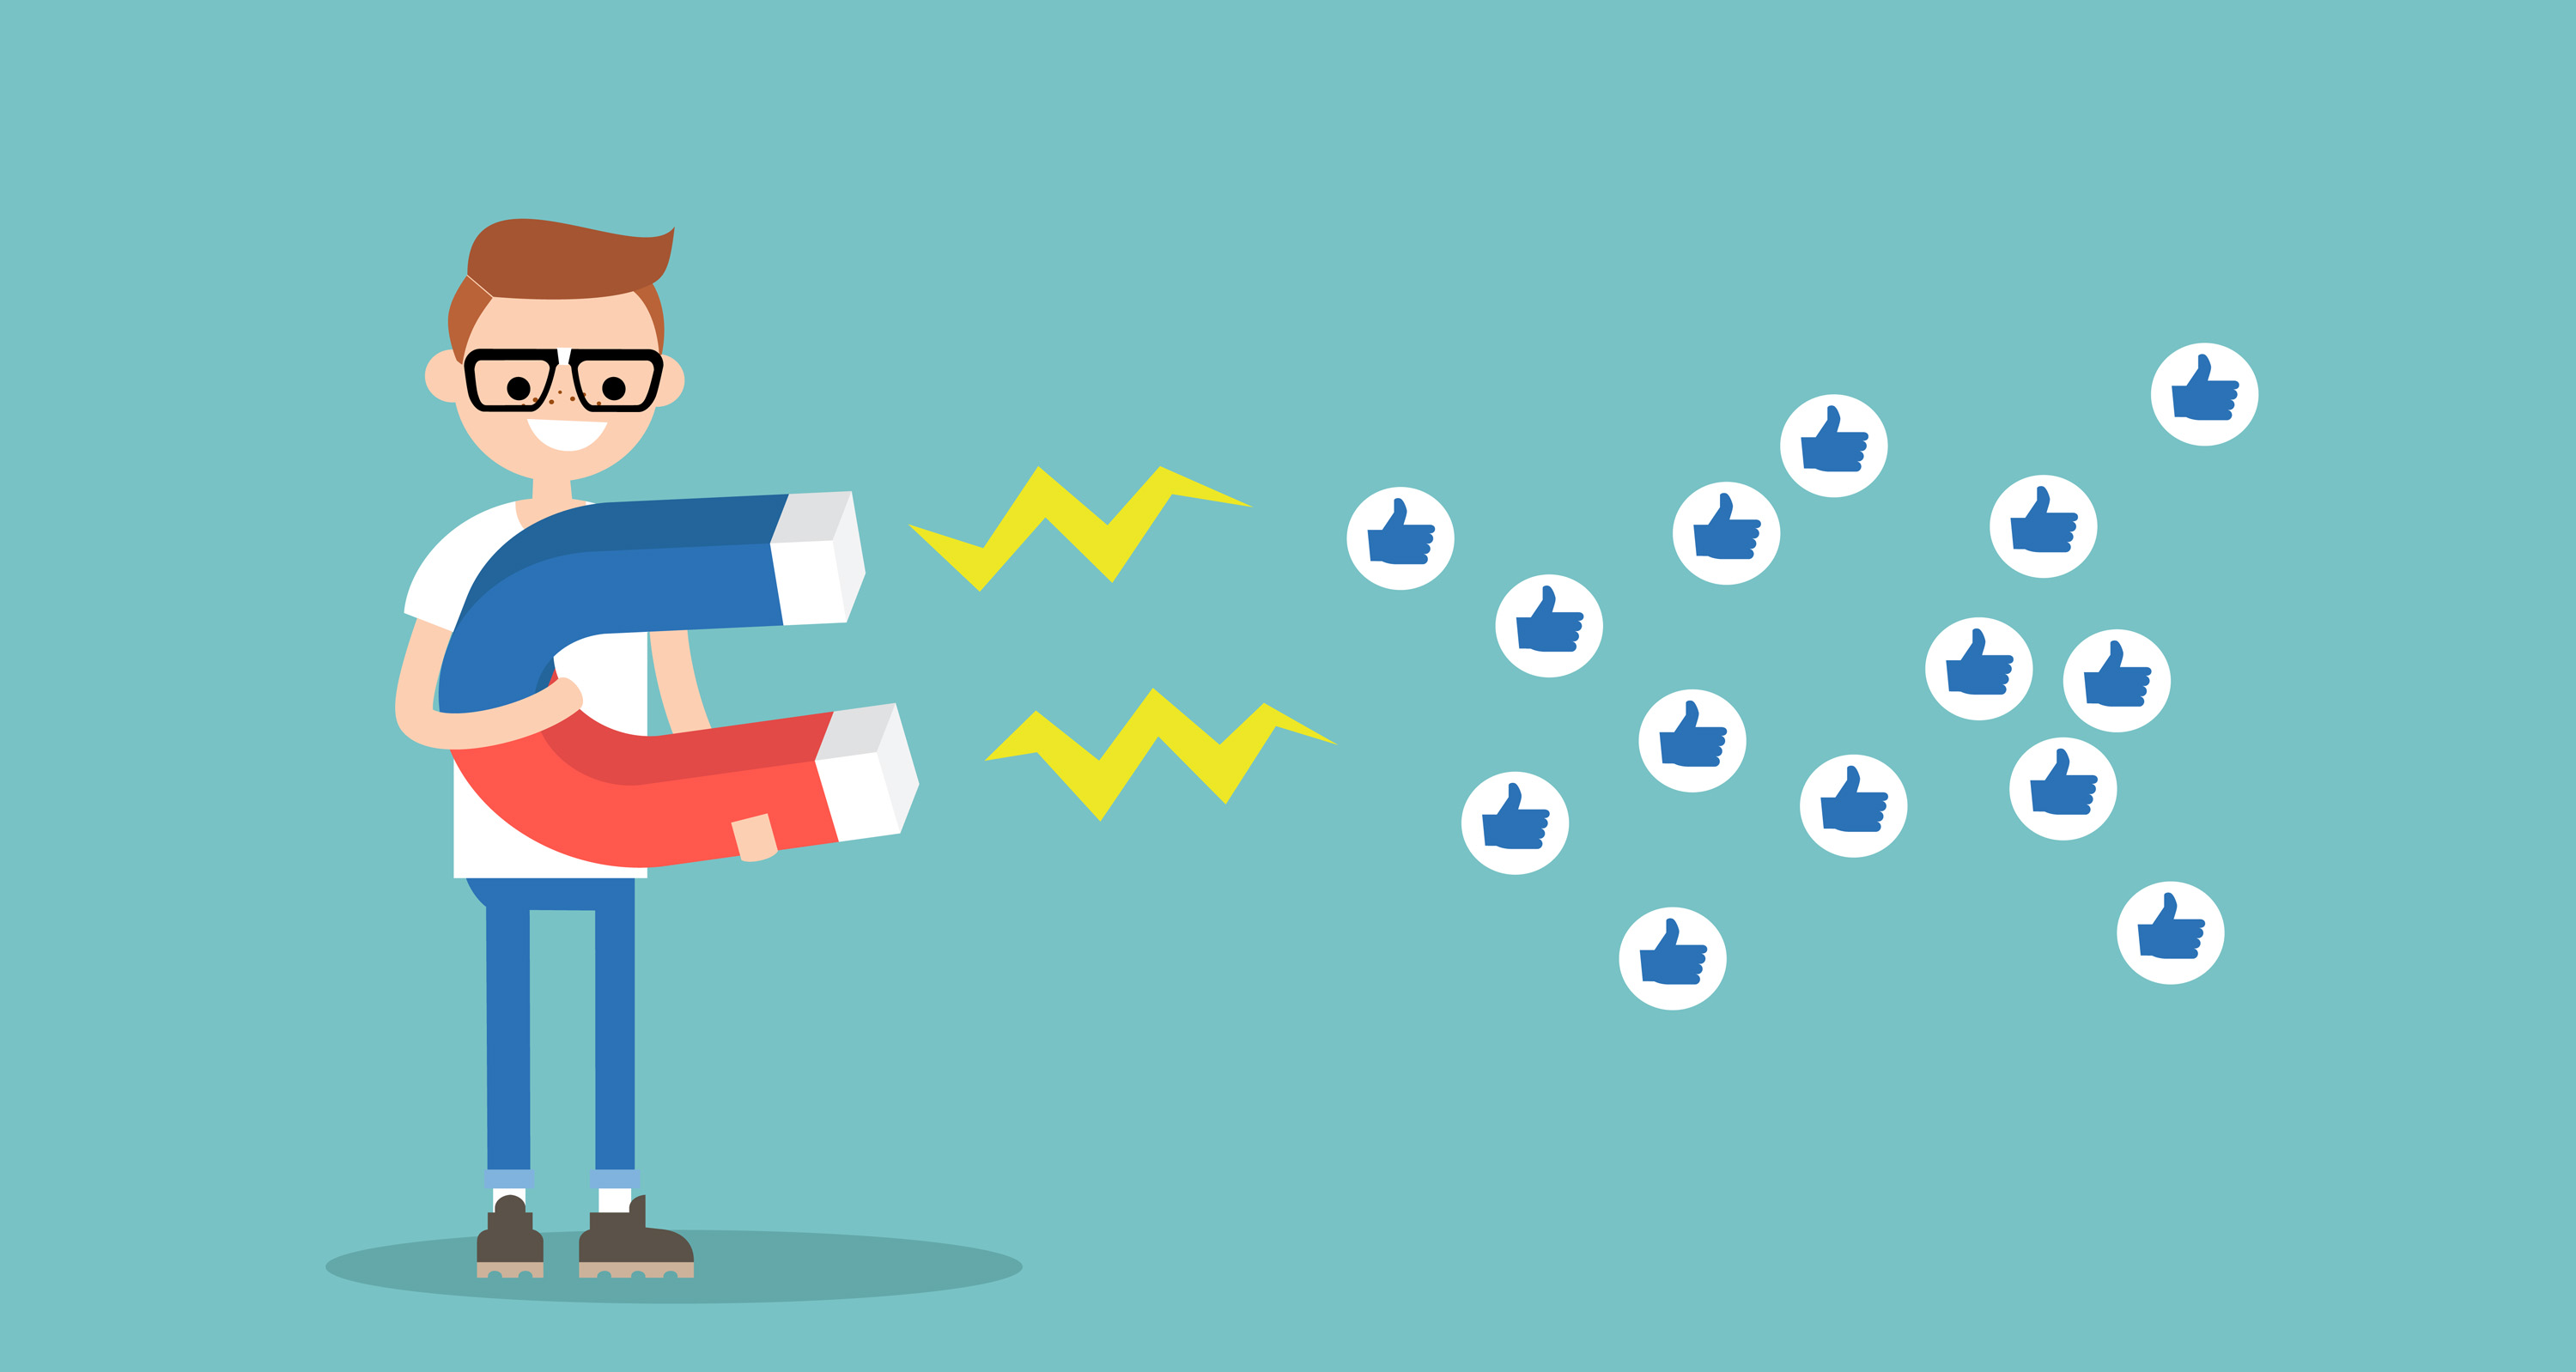 How to create attractive content for your social networks in 2018 - IDEA YOUR BLOG SITE 2020 - CWT Advertising Essex